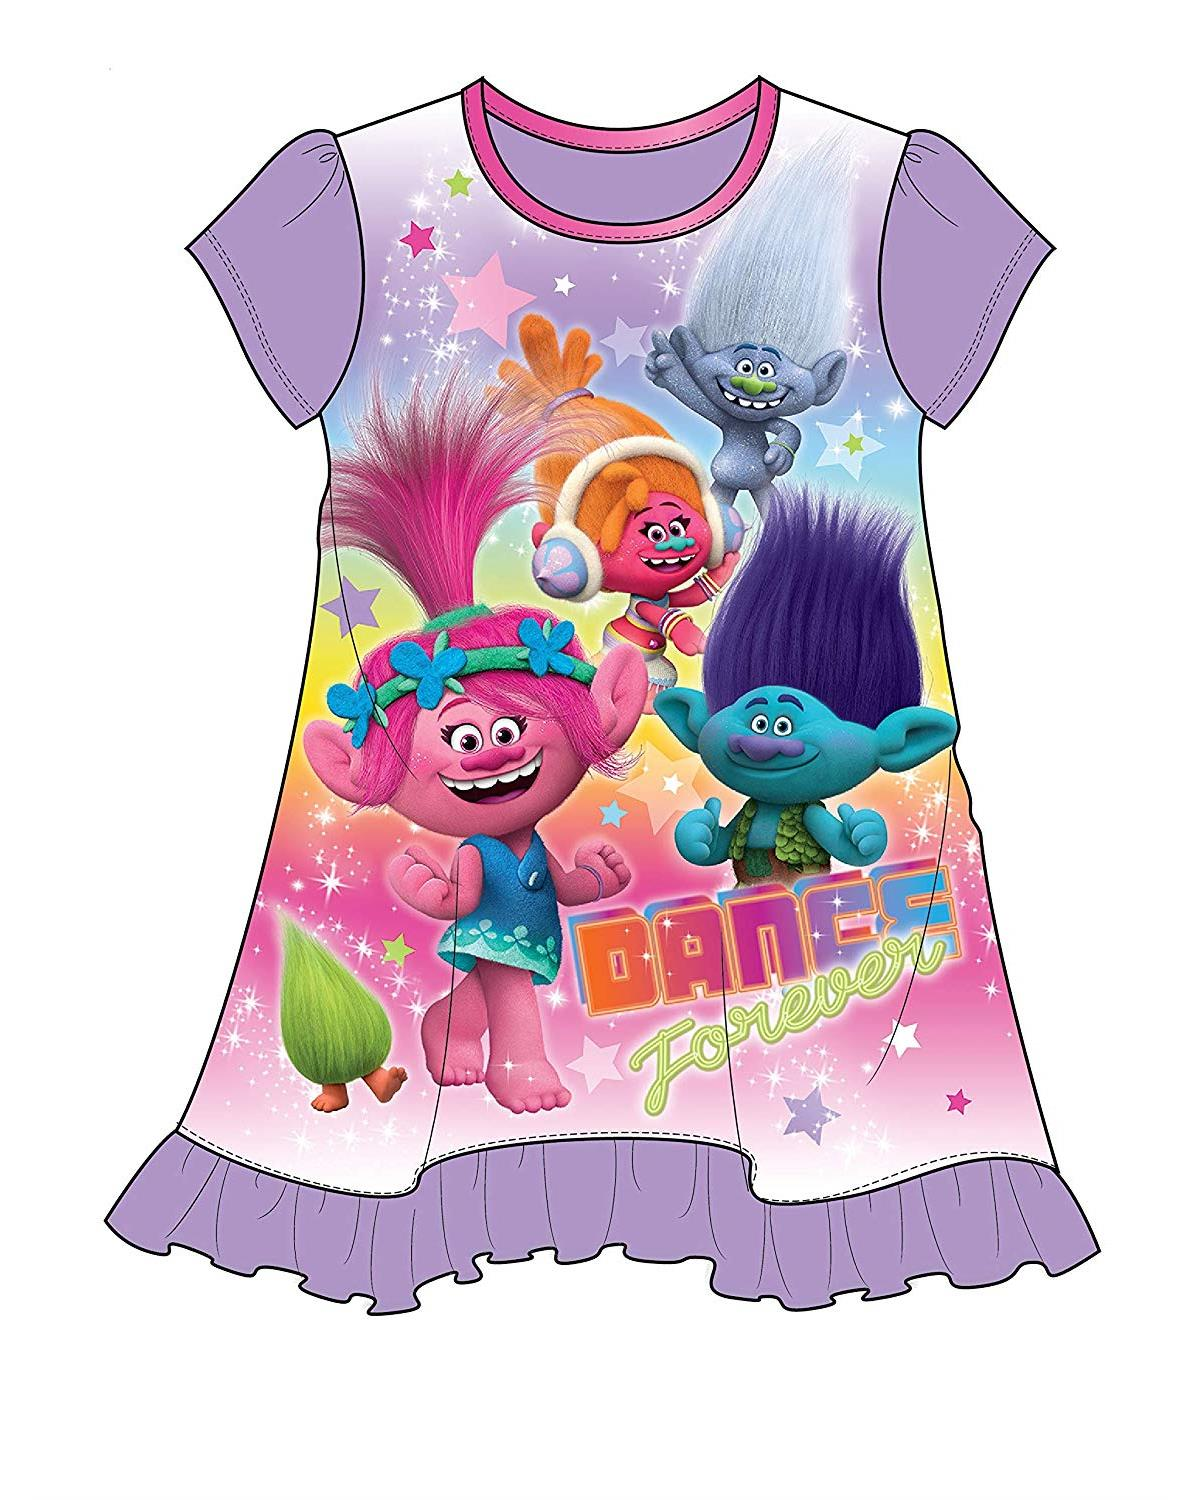 Trolls Movie Dance Forever Purple Nightgown for Toddler Girls, Purple, Size: 3T